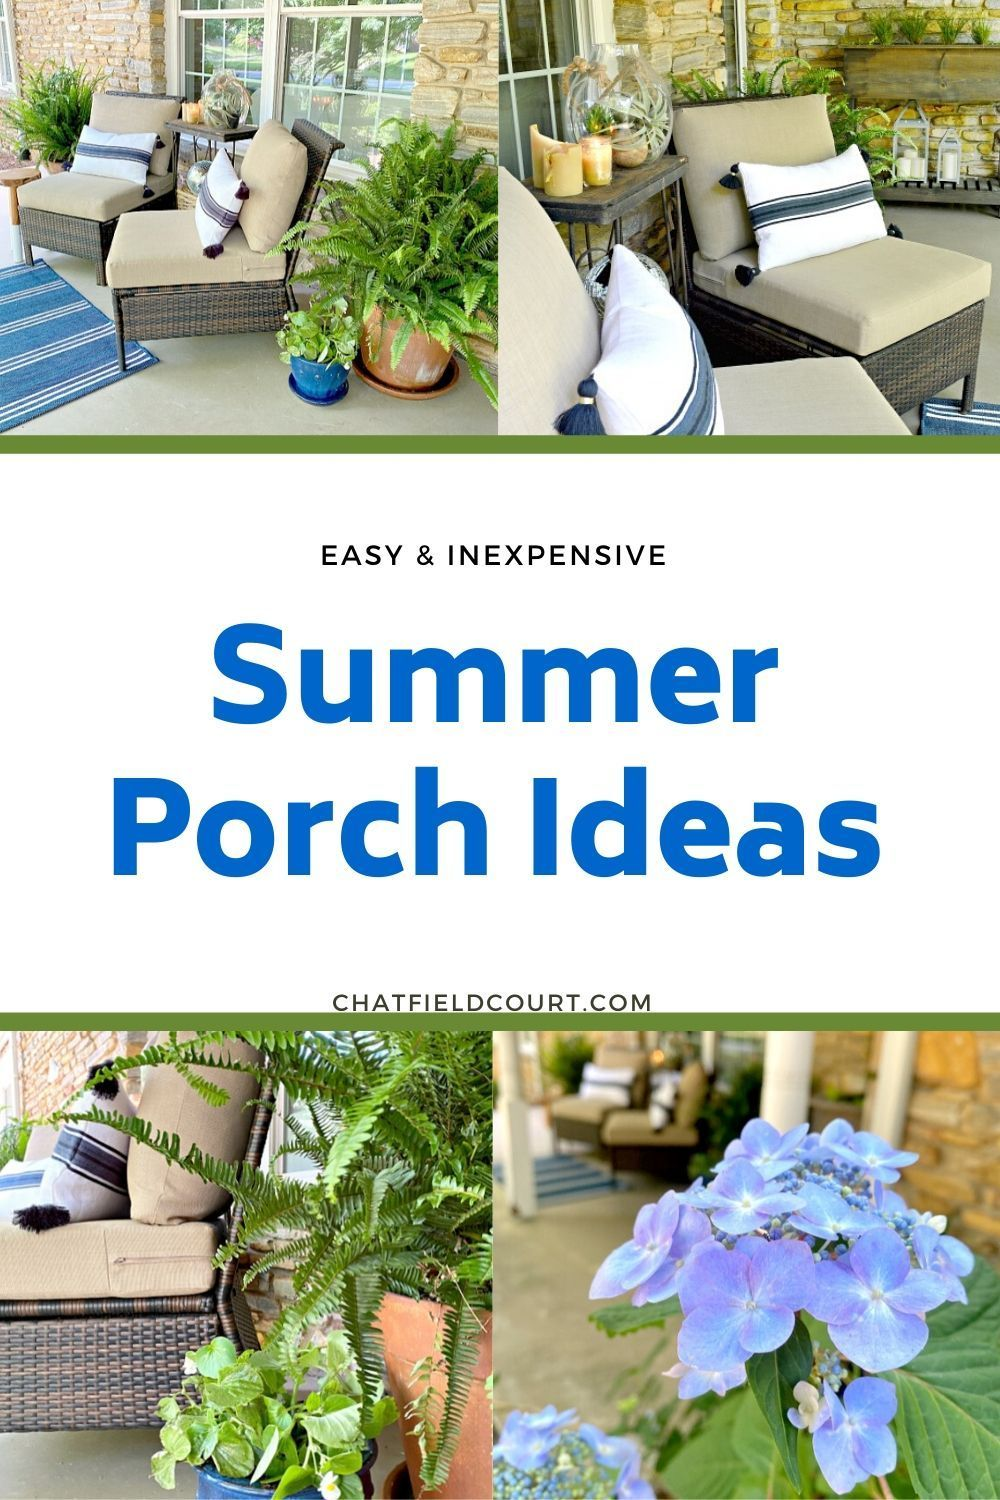 Easy summer porch ideas to help you create a welcoming and warm place for guests or for just hanging out. Budget friendly decor ideas like bringing indoor decor outside, using DIY candles and adding plants.